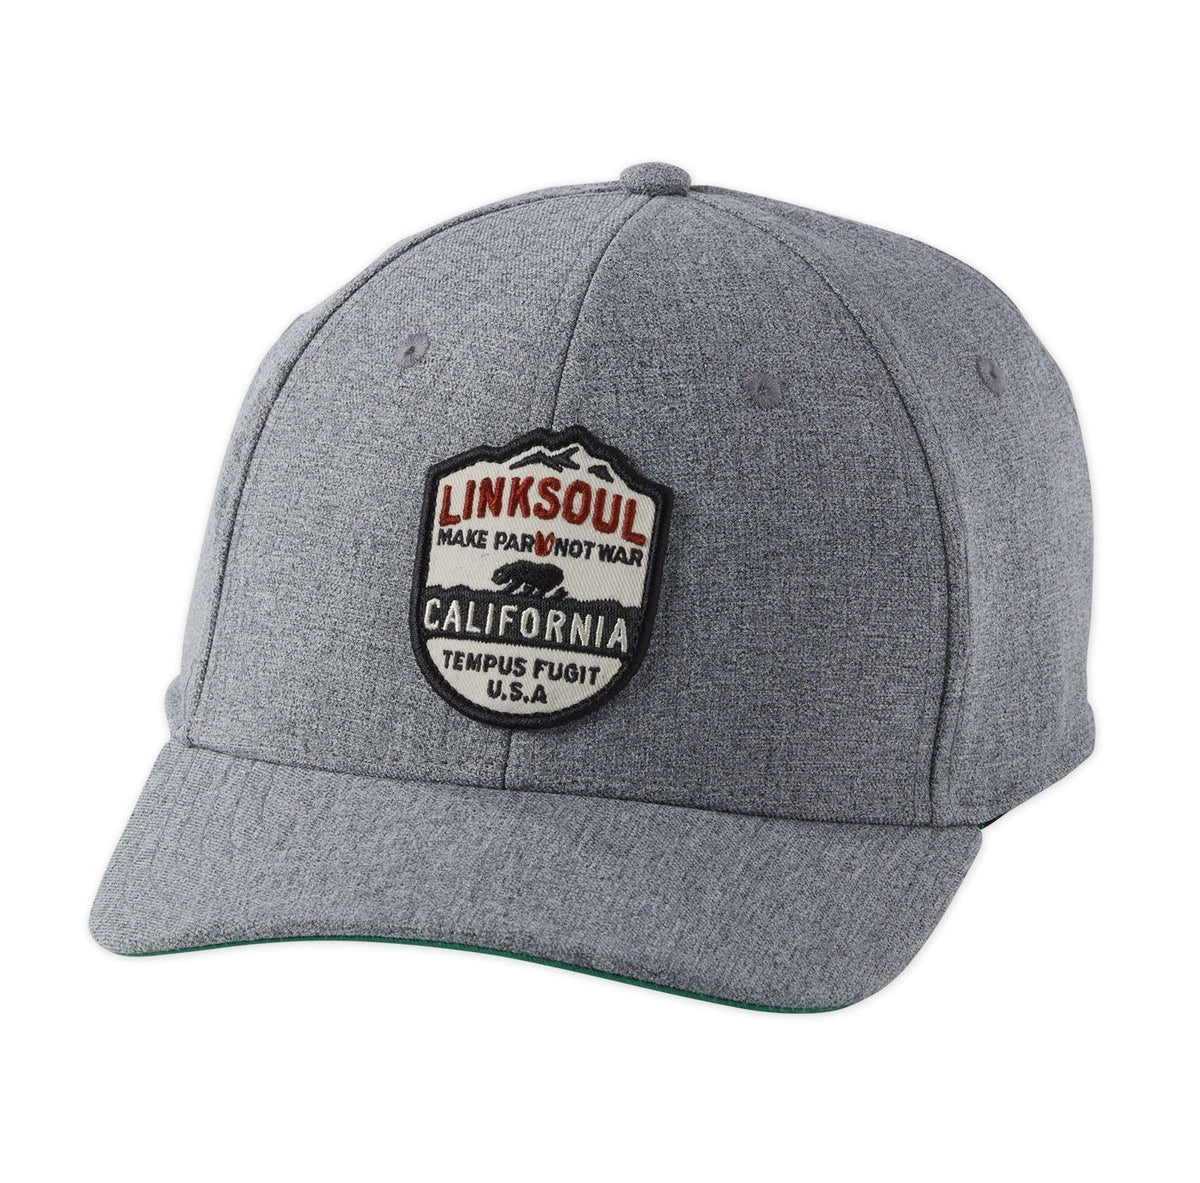 California Shield Patch Hat